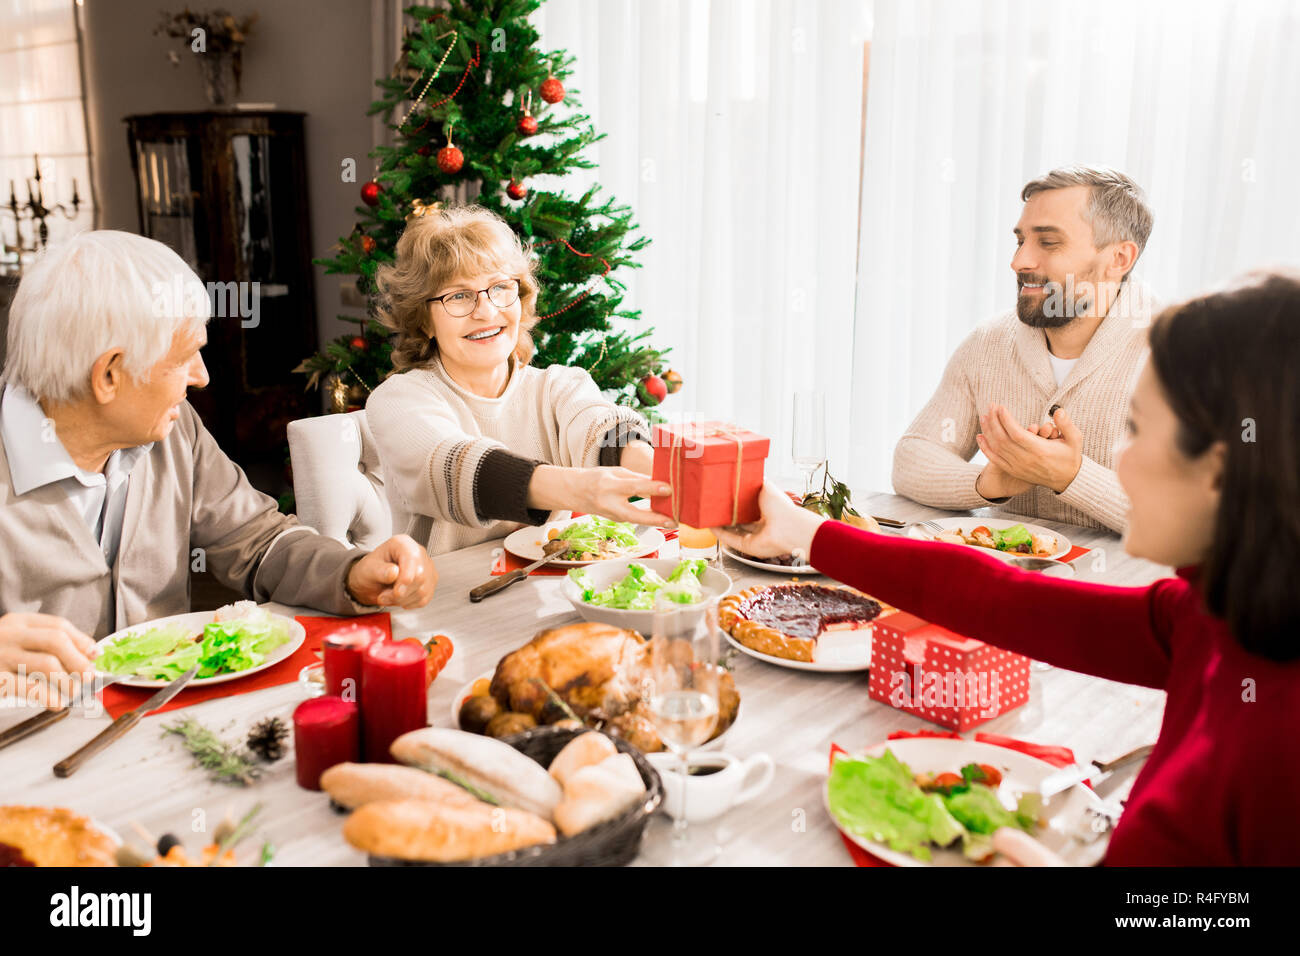 Family Exchanging Presents - Stock Image